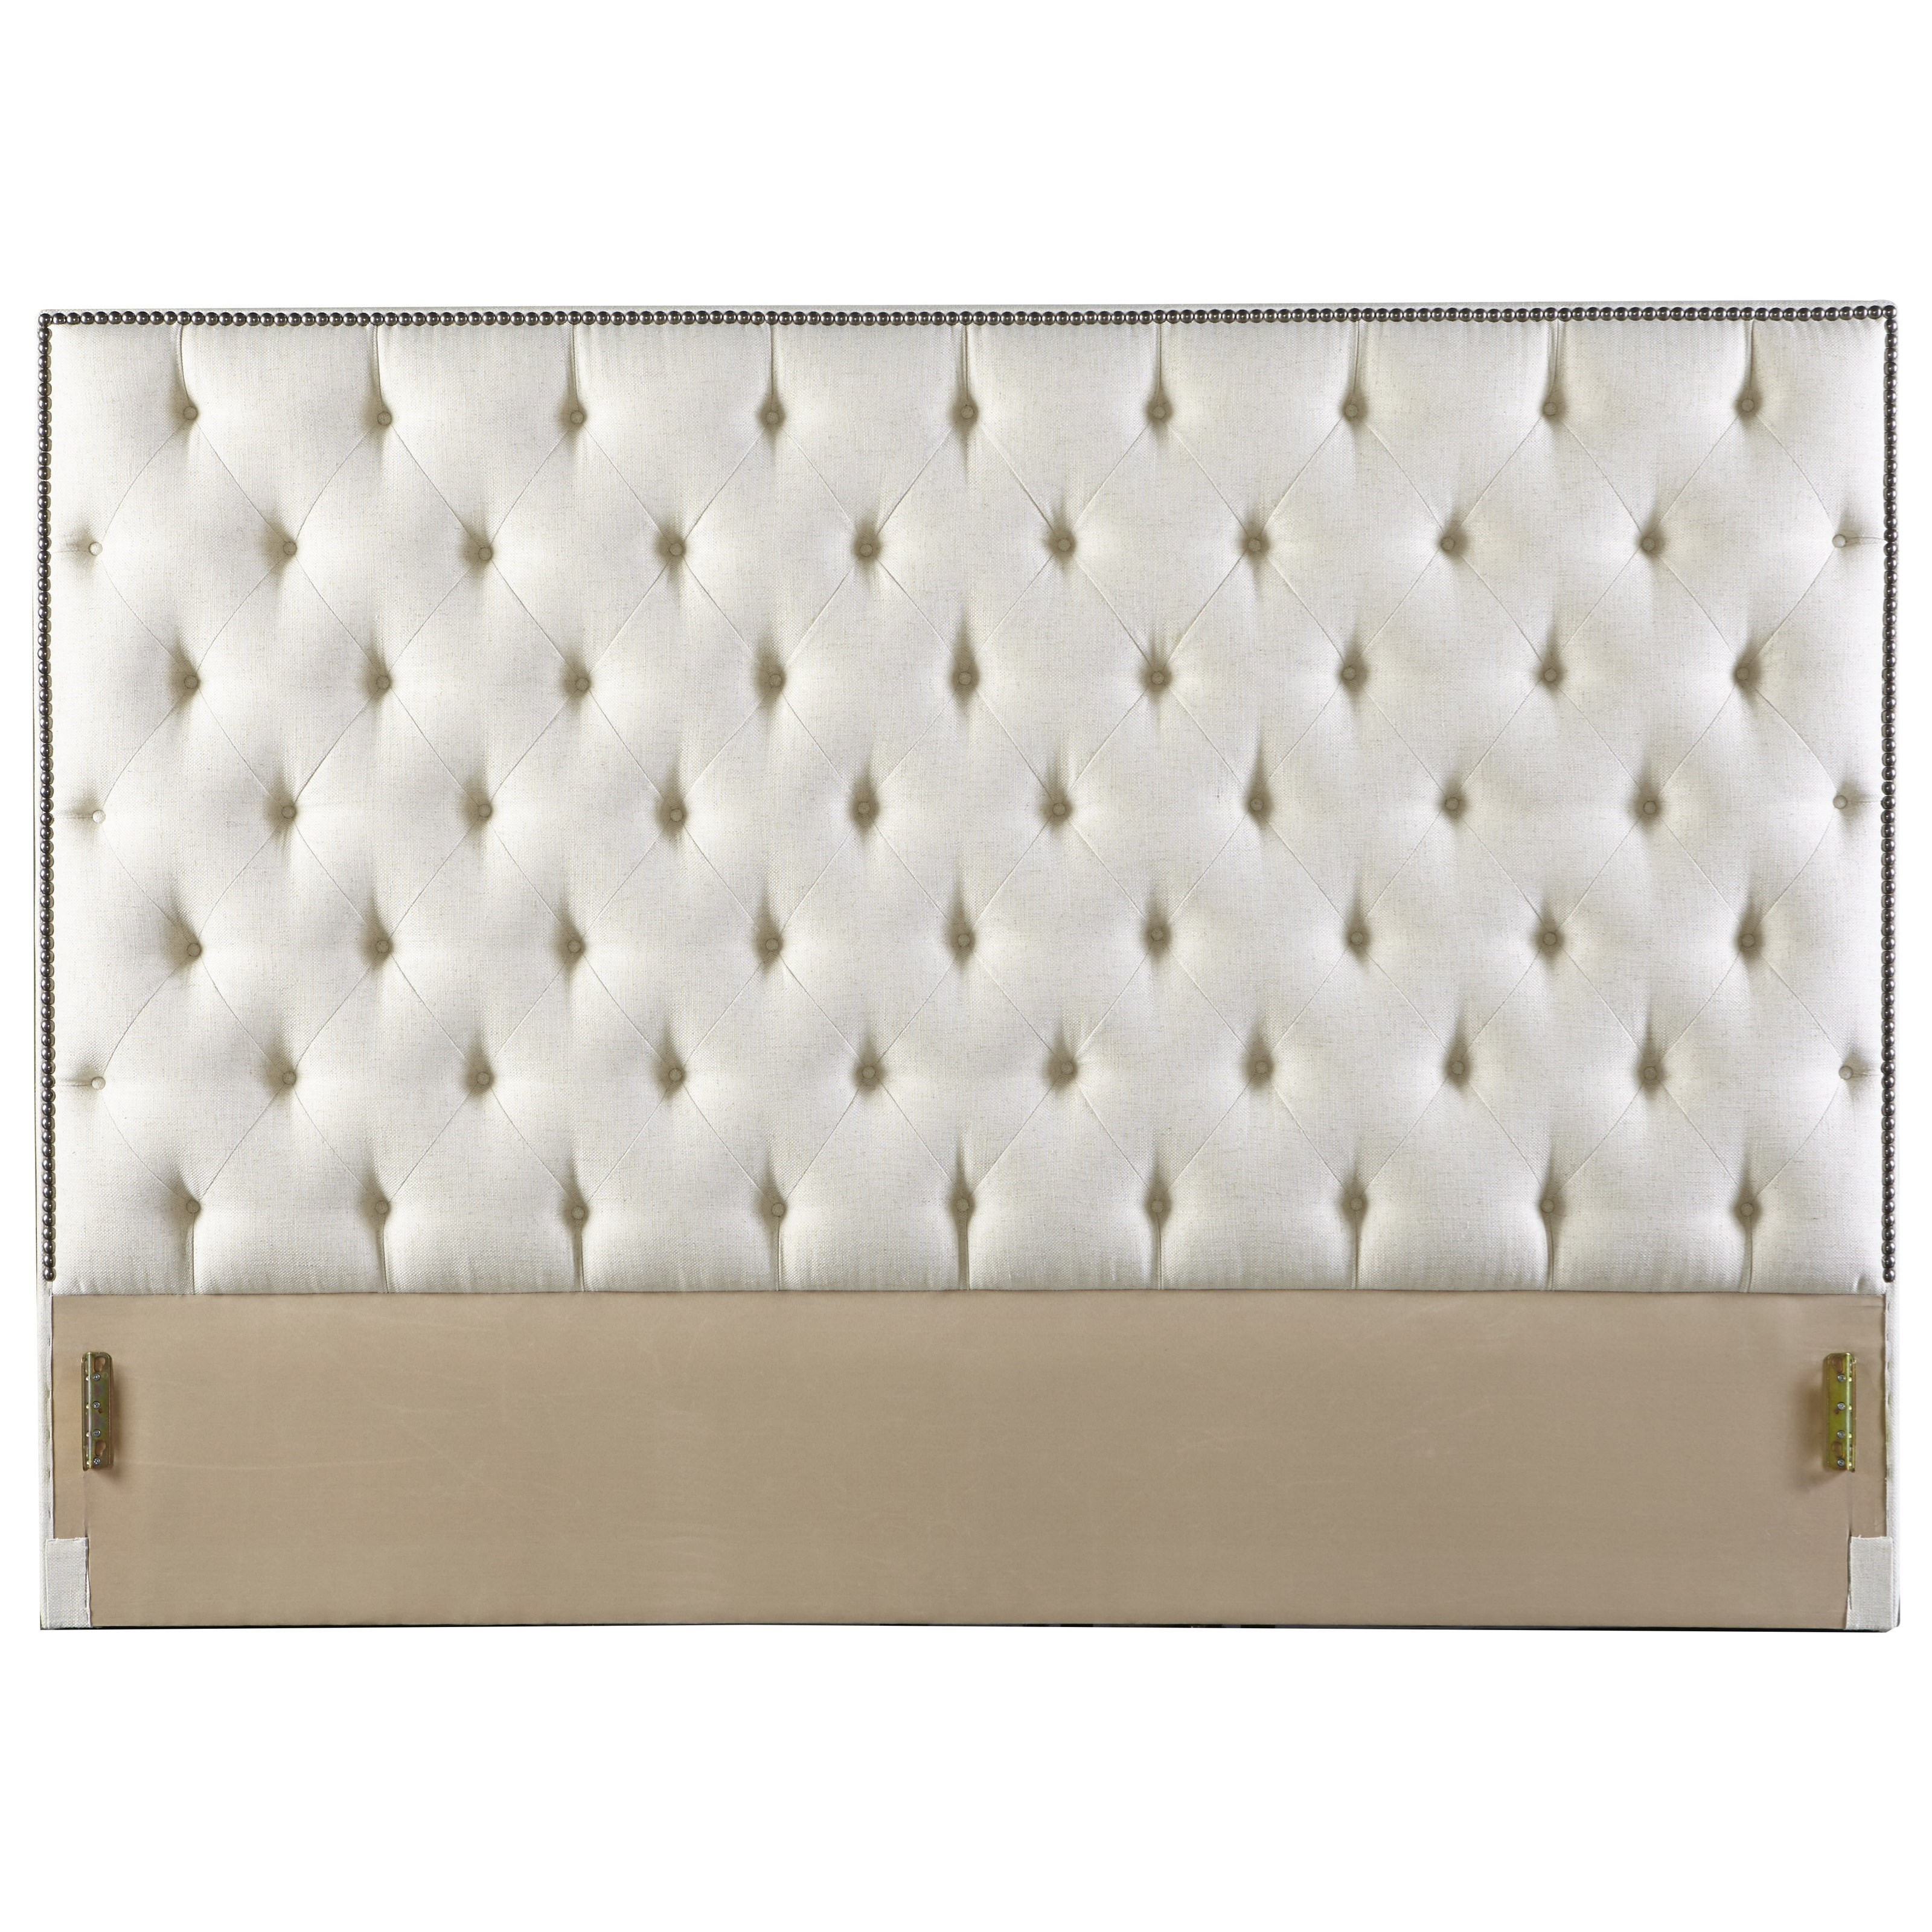 Rowe My Style Beds Hamilton 60 King Headboard With Tufting And Nailhead Trim Belfort Furniture Headboards